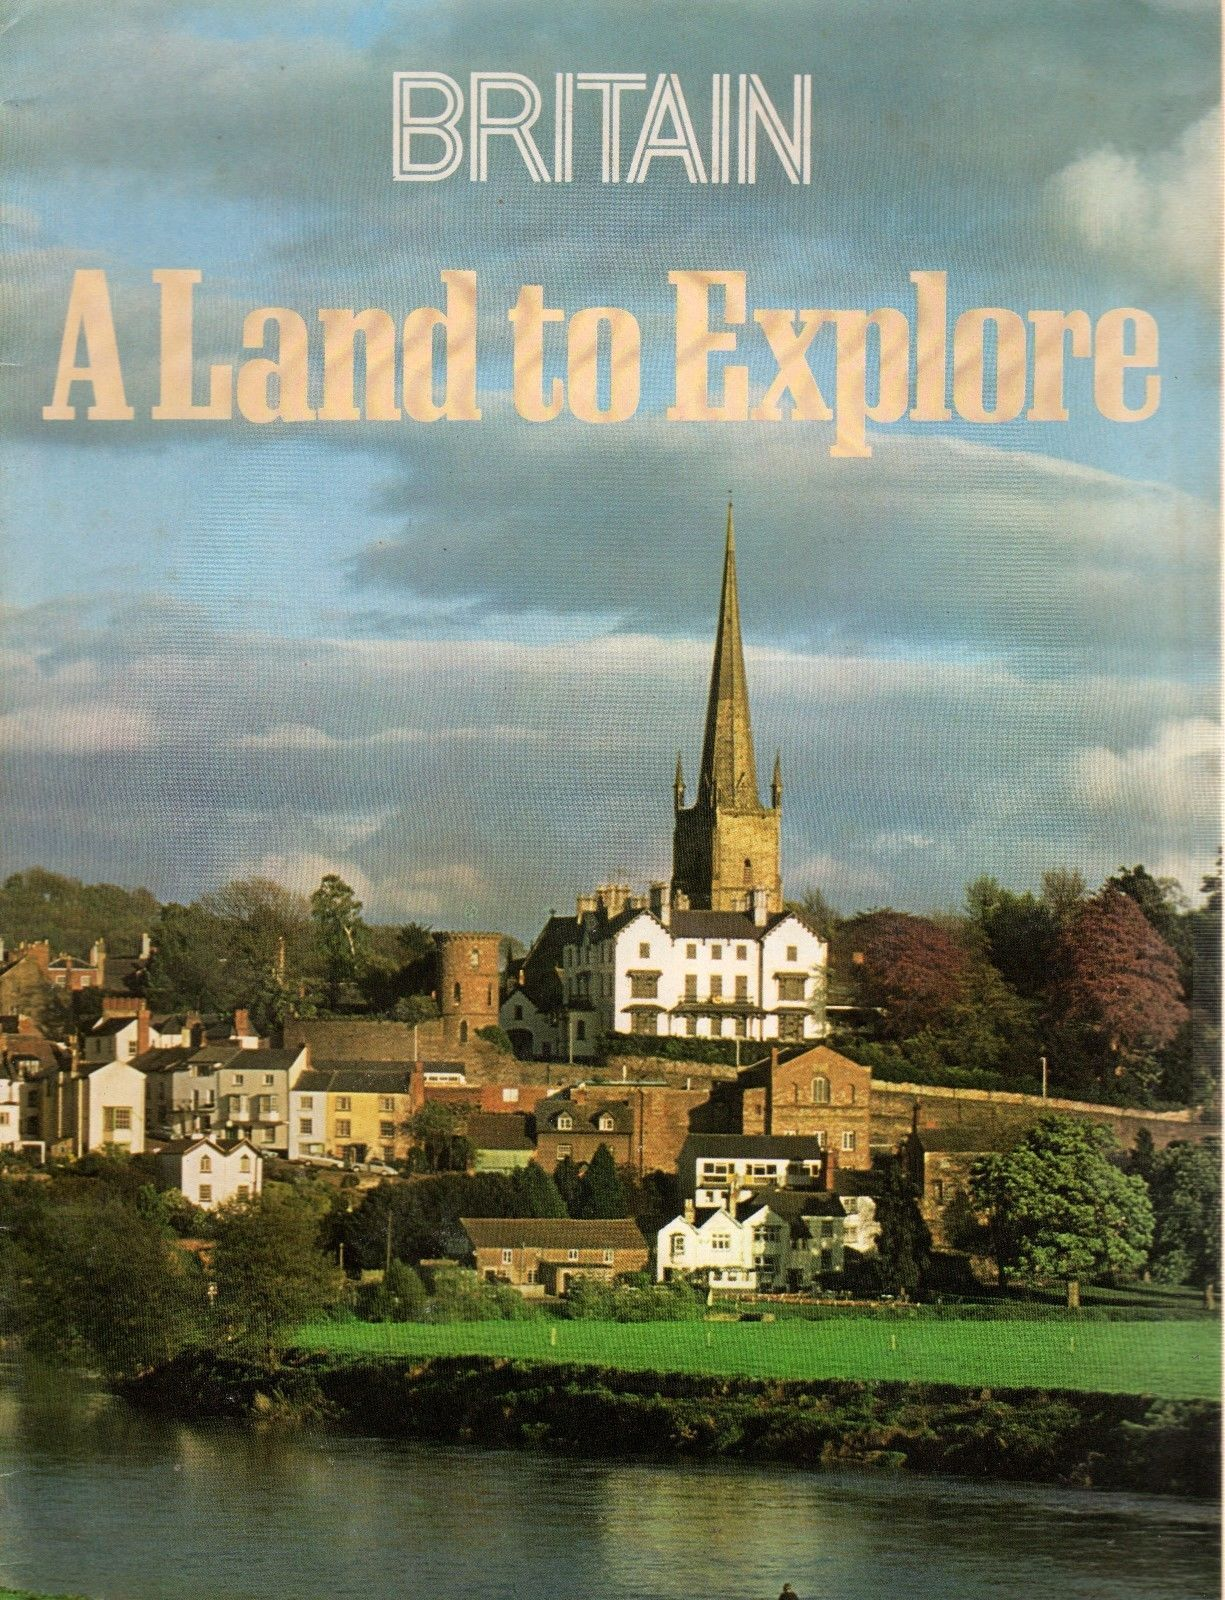 Primary image for Britian A Land to Explore 1979 Magazine File (1142)